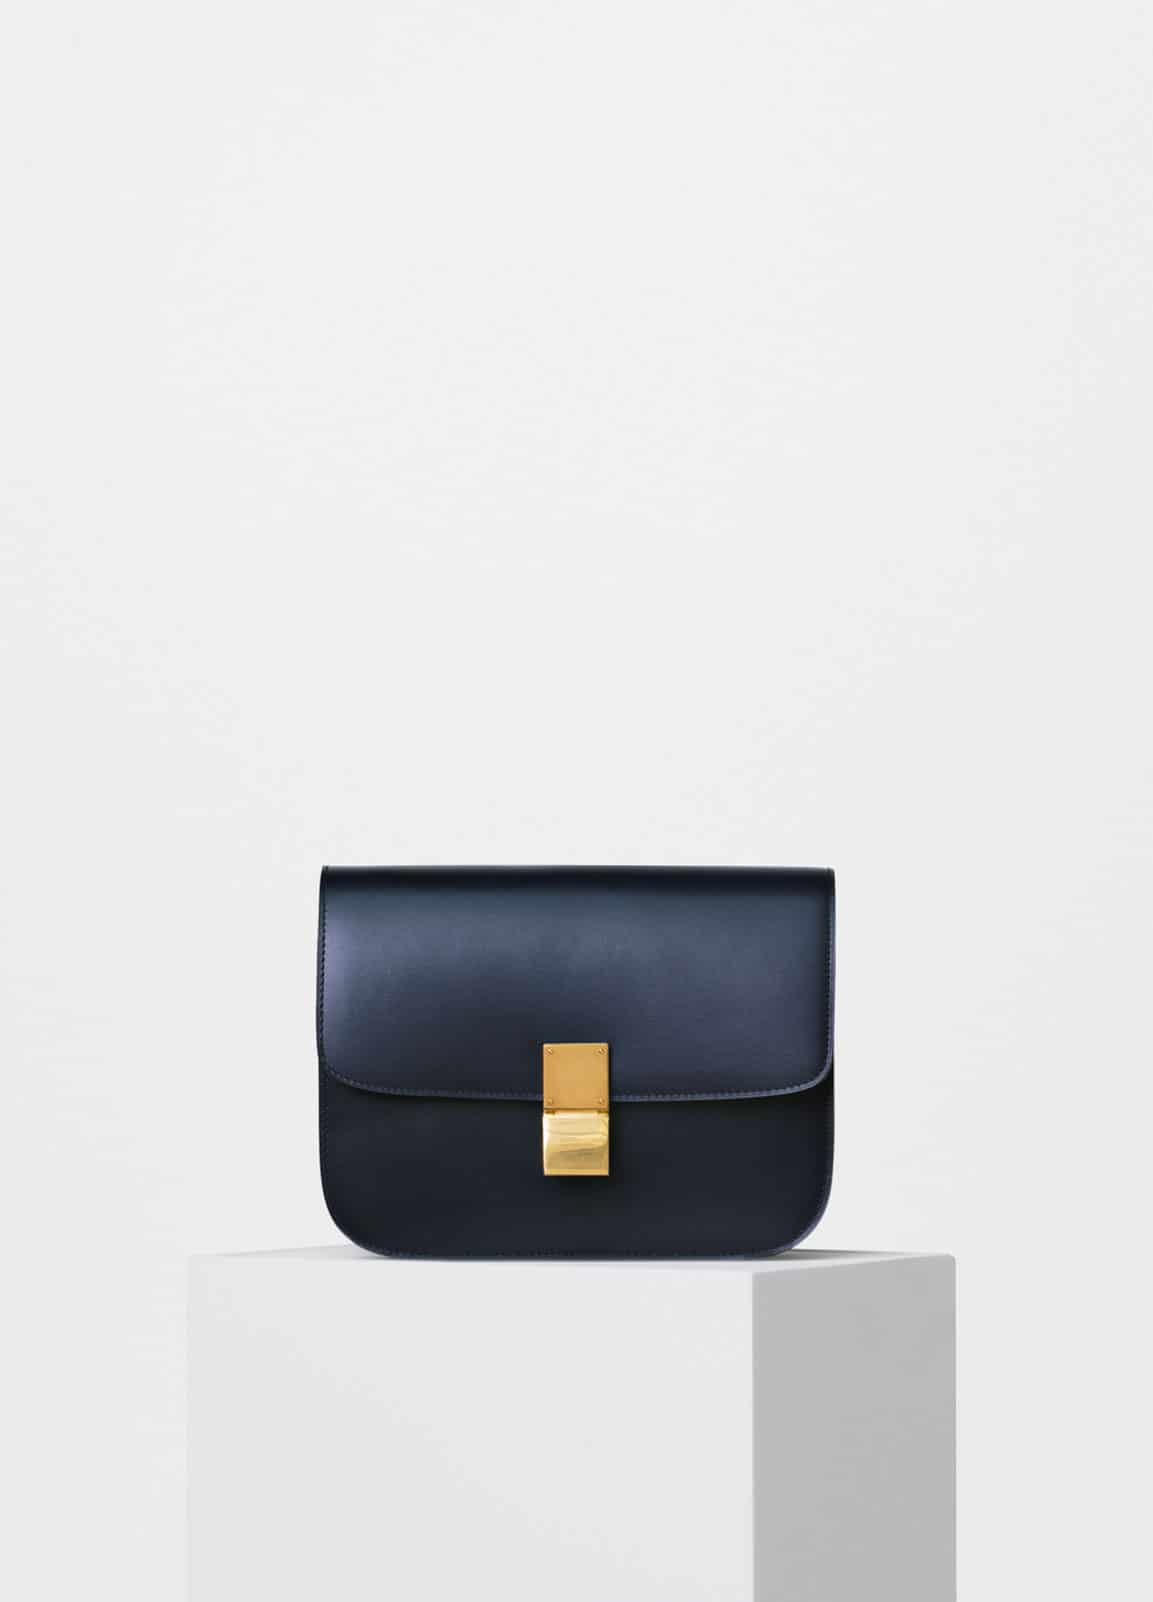 celine mini price - Celine Summer 2016 Bag Collection Featuring Pillow Bags | Spotted ...